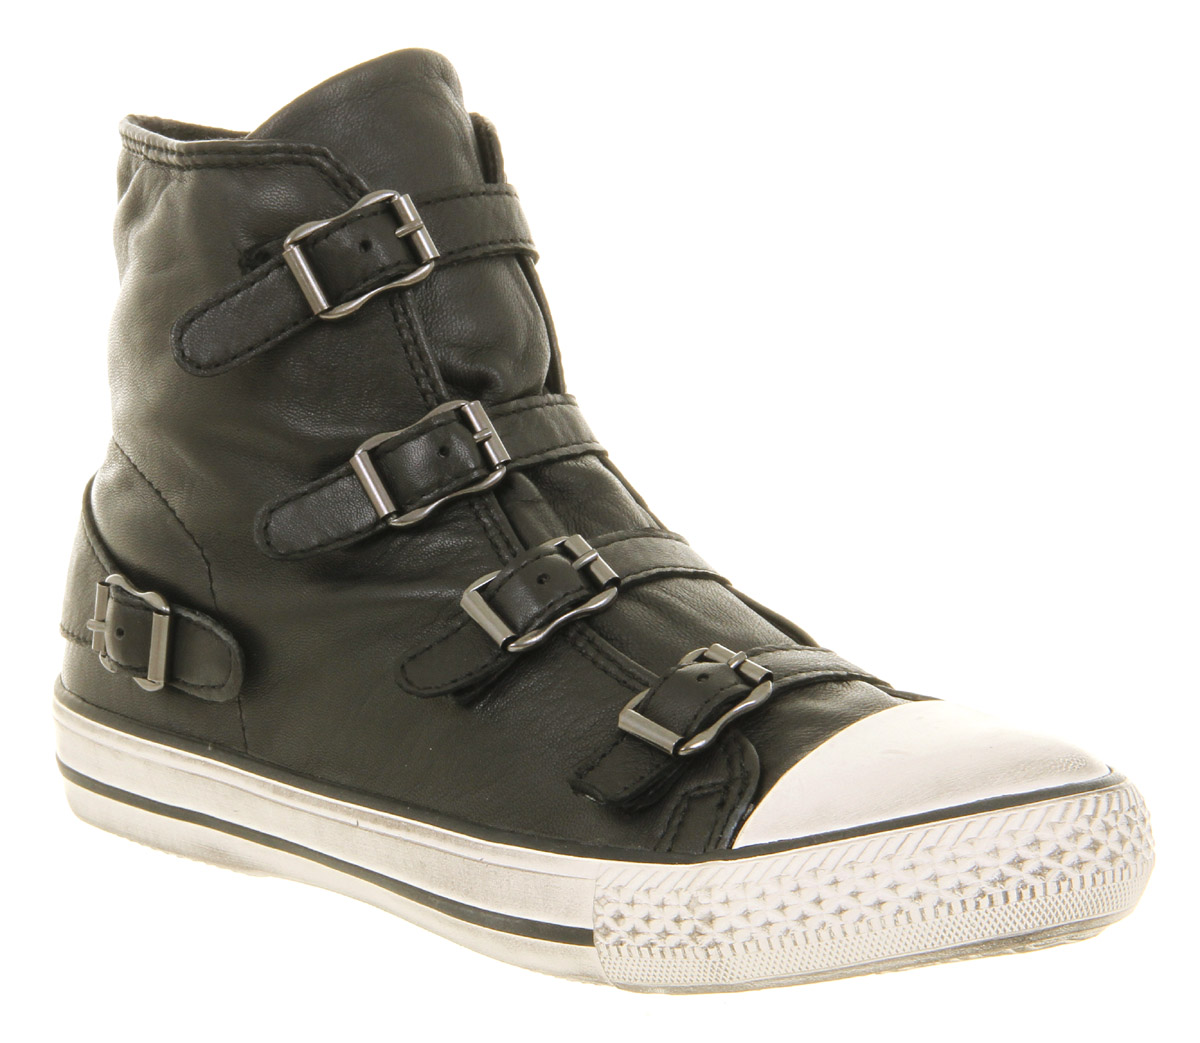 Womens Ash Virgin High Top Black Nappa Wax Boots | eBay